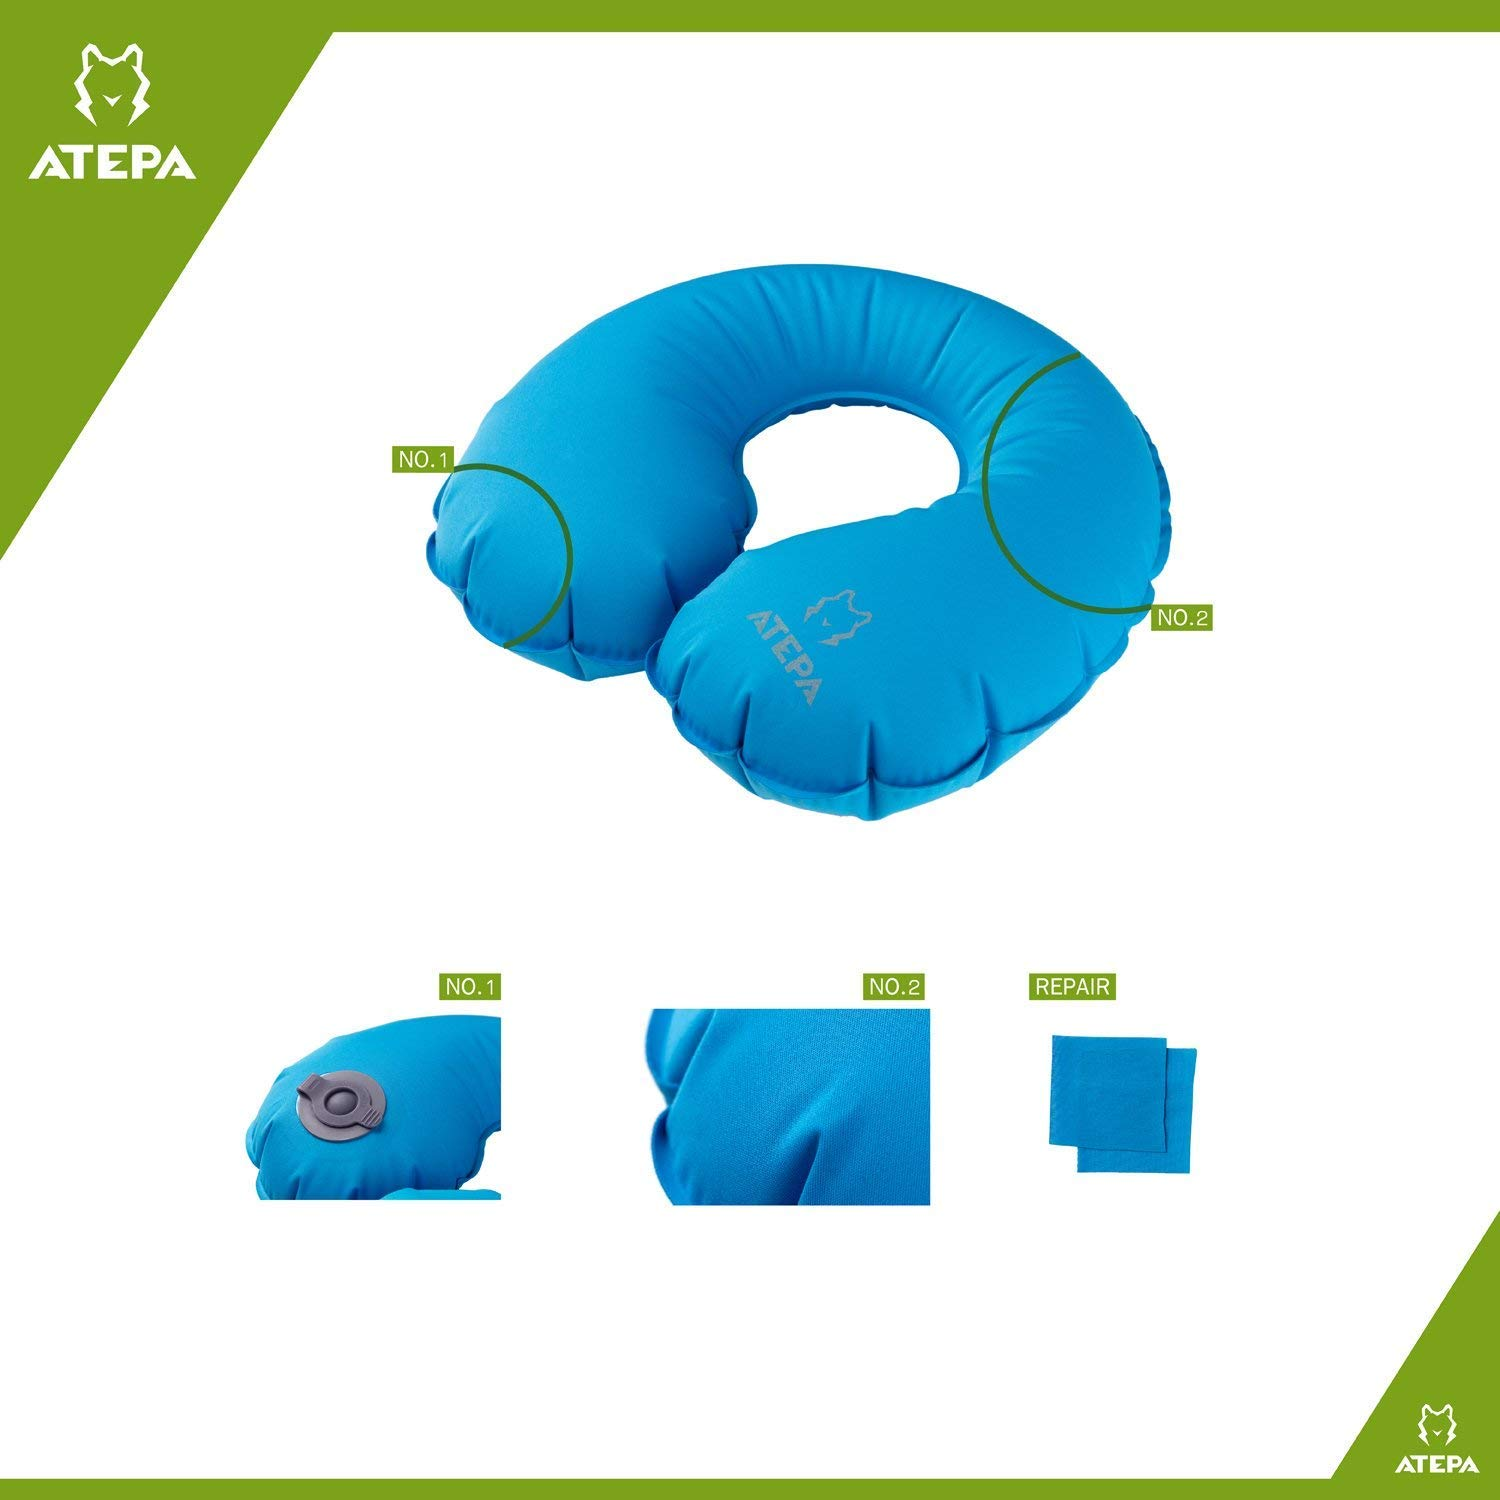 ATEPA U Shape Inflatable Neck Pillow for Traveling, Home, Office, with Patent Plastic Valve and Repair Cloth